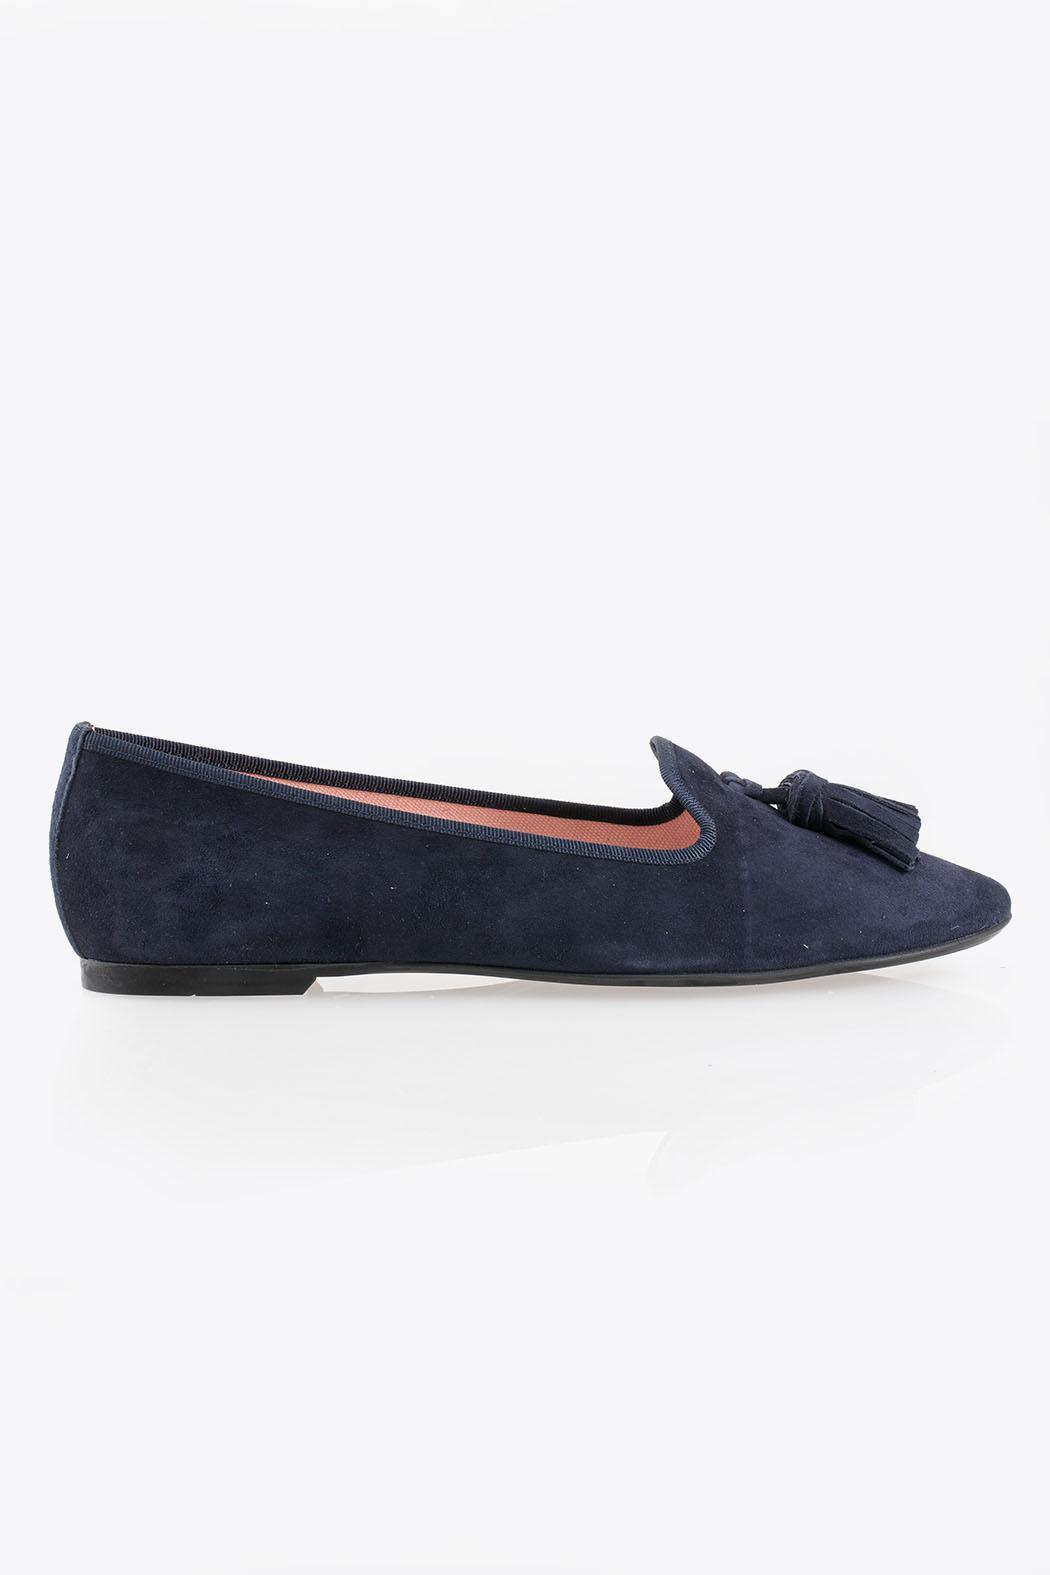 Pretty Ballerinas Suede Loafers - Front Full Image